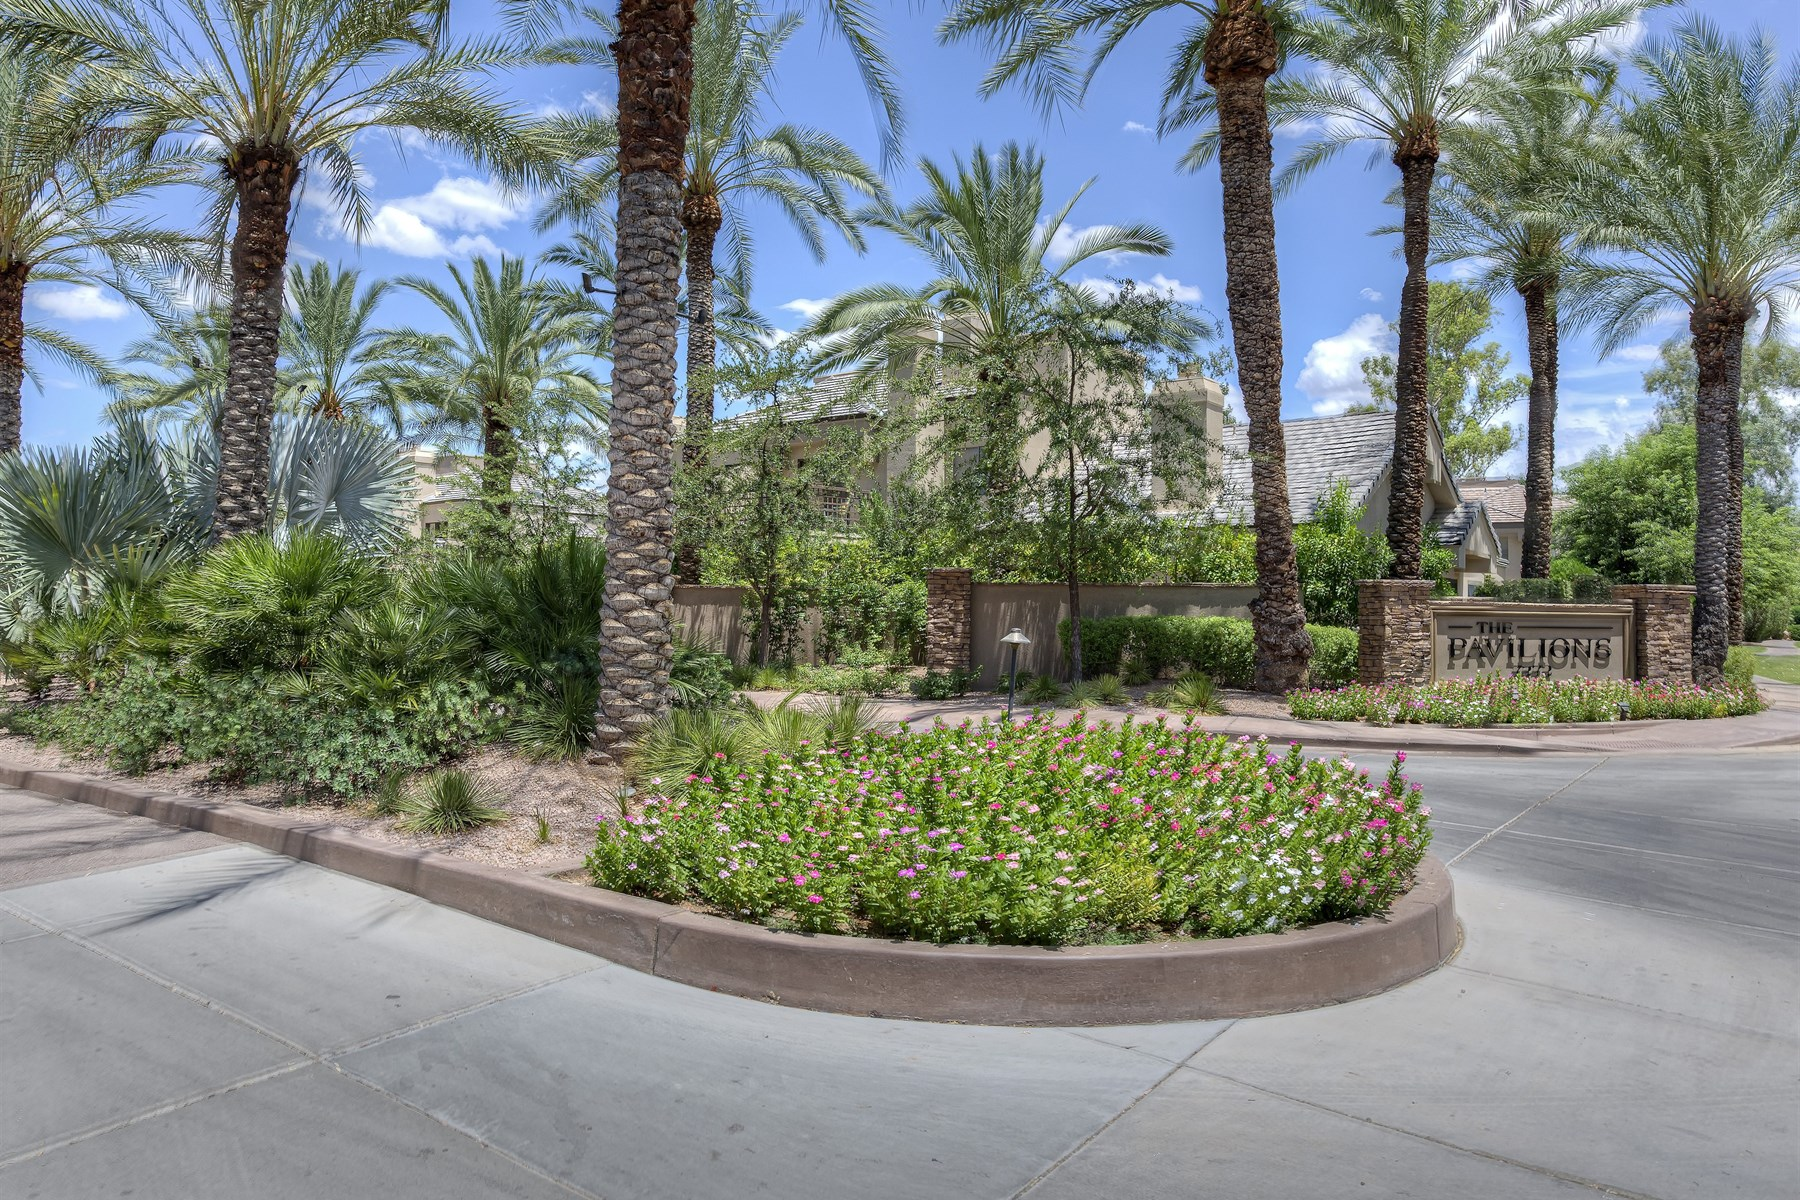 Single Family Home for Sale at wonderful opportunity to own a lovely ugraded unit in Gainey Ranch. 7272 E GAINEY RANCH RD 82 Scottsdale, Arizona 85258 United States